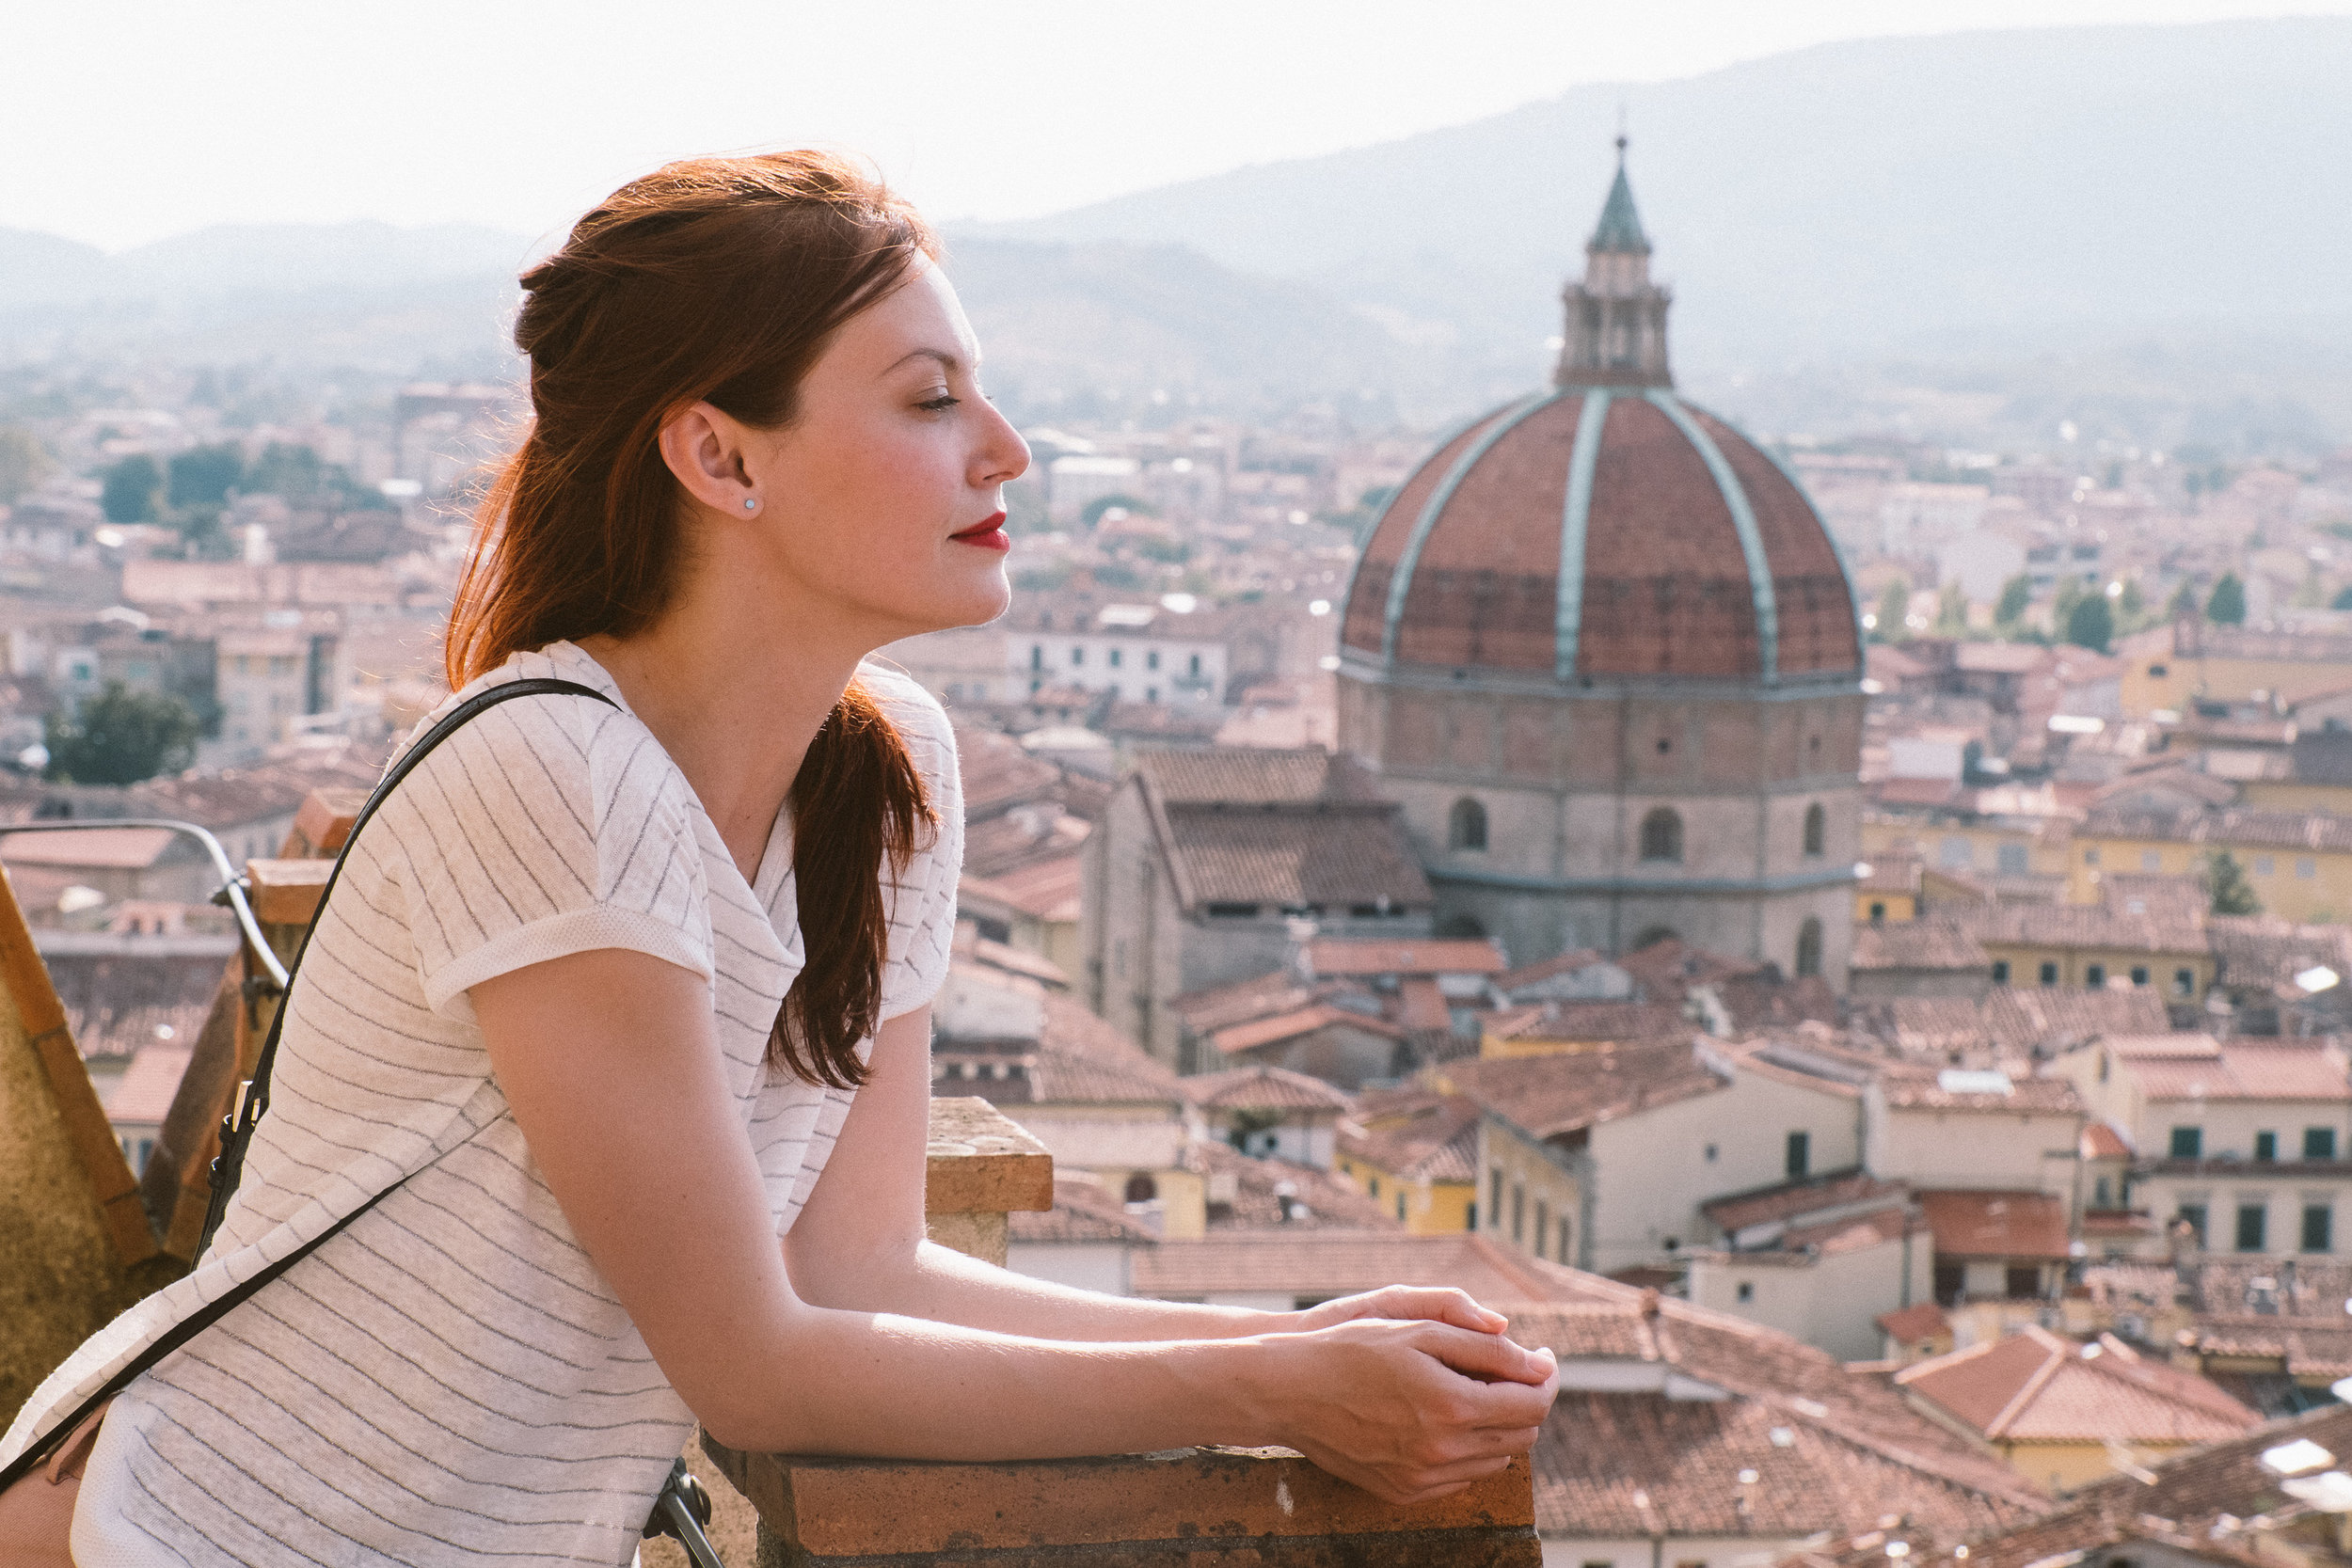 Admiring the views over Pistoia